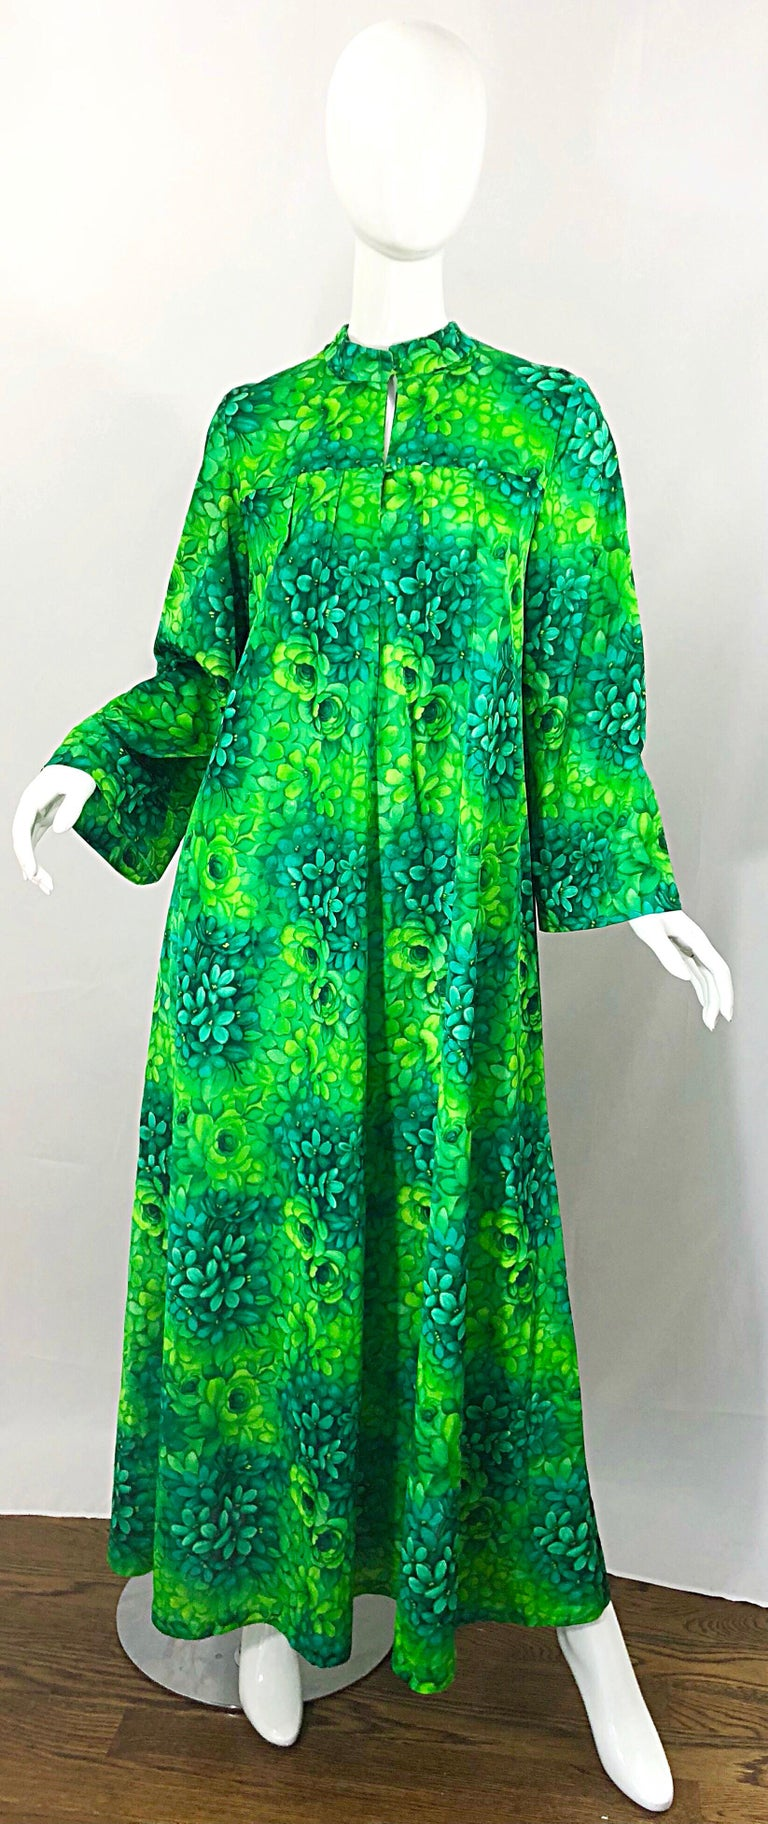 Amazing 1970s Neon + Kelly Green Abstract Flower Print 70s Vintage Caftan Dress For Sale 10